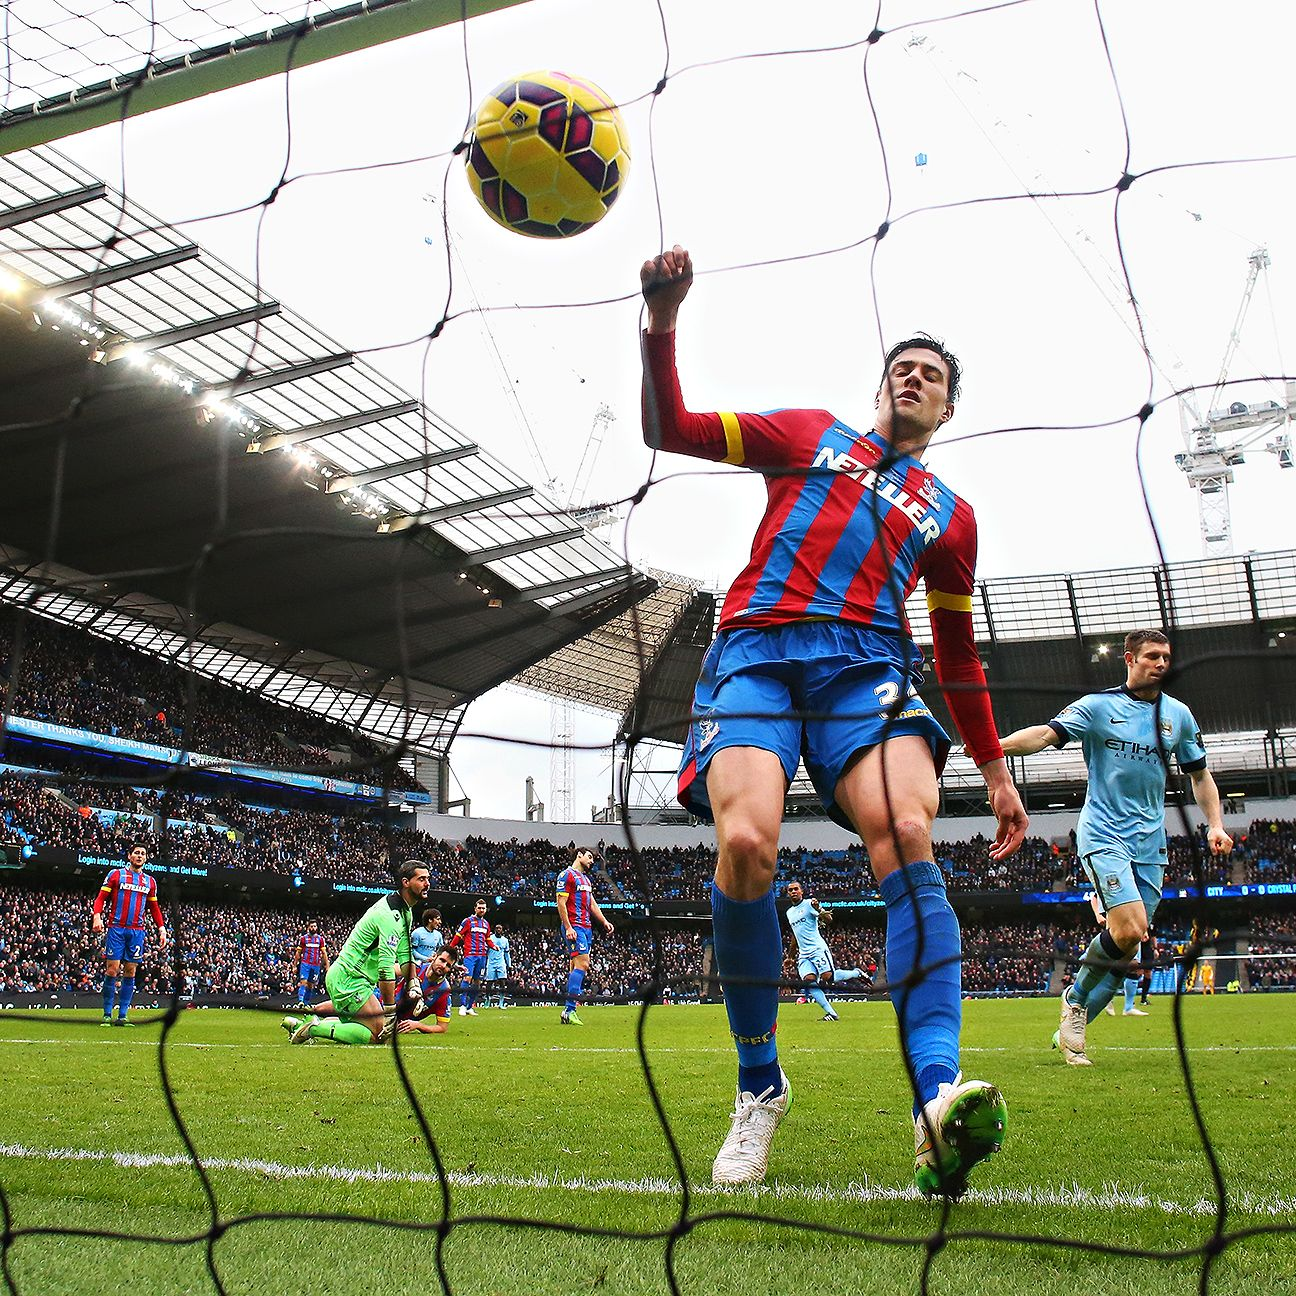 Martin Kelly was unable to prevent David Silva's deflected shot from going into the net in Palace's hard-luck 3-0 defeat at Manchester City.